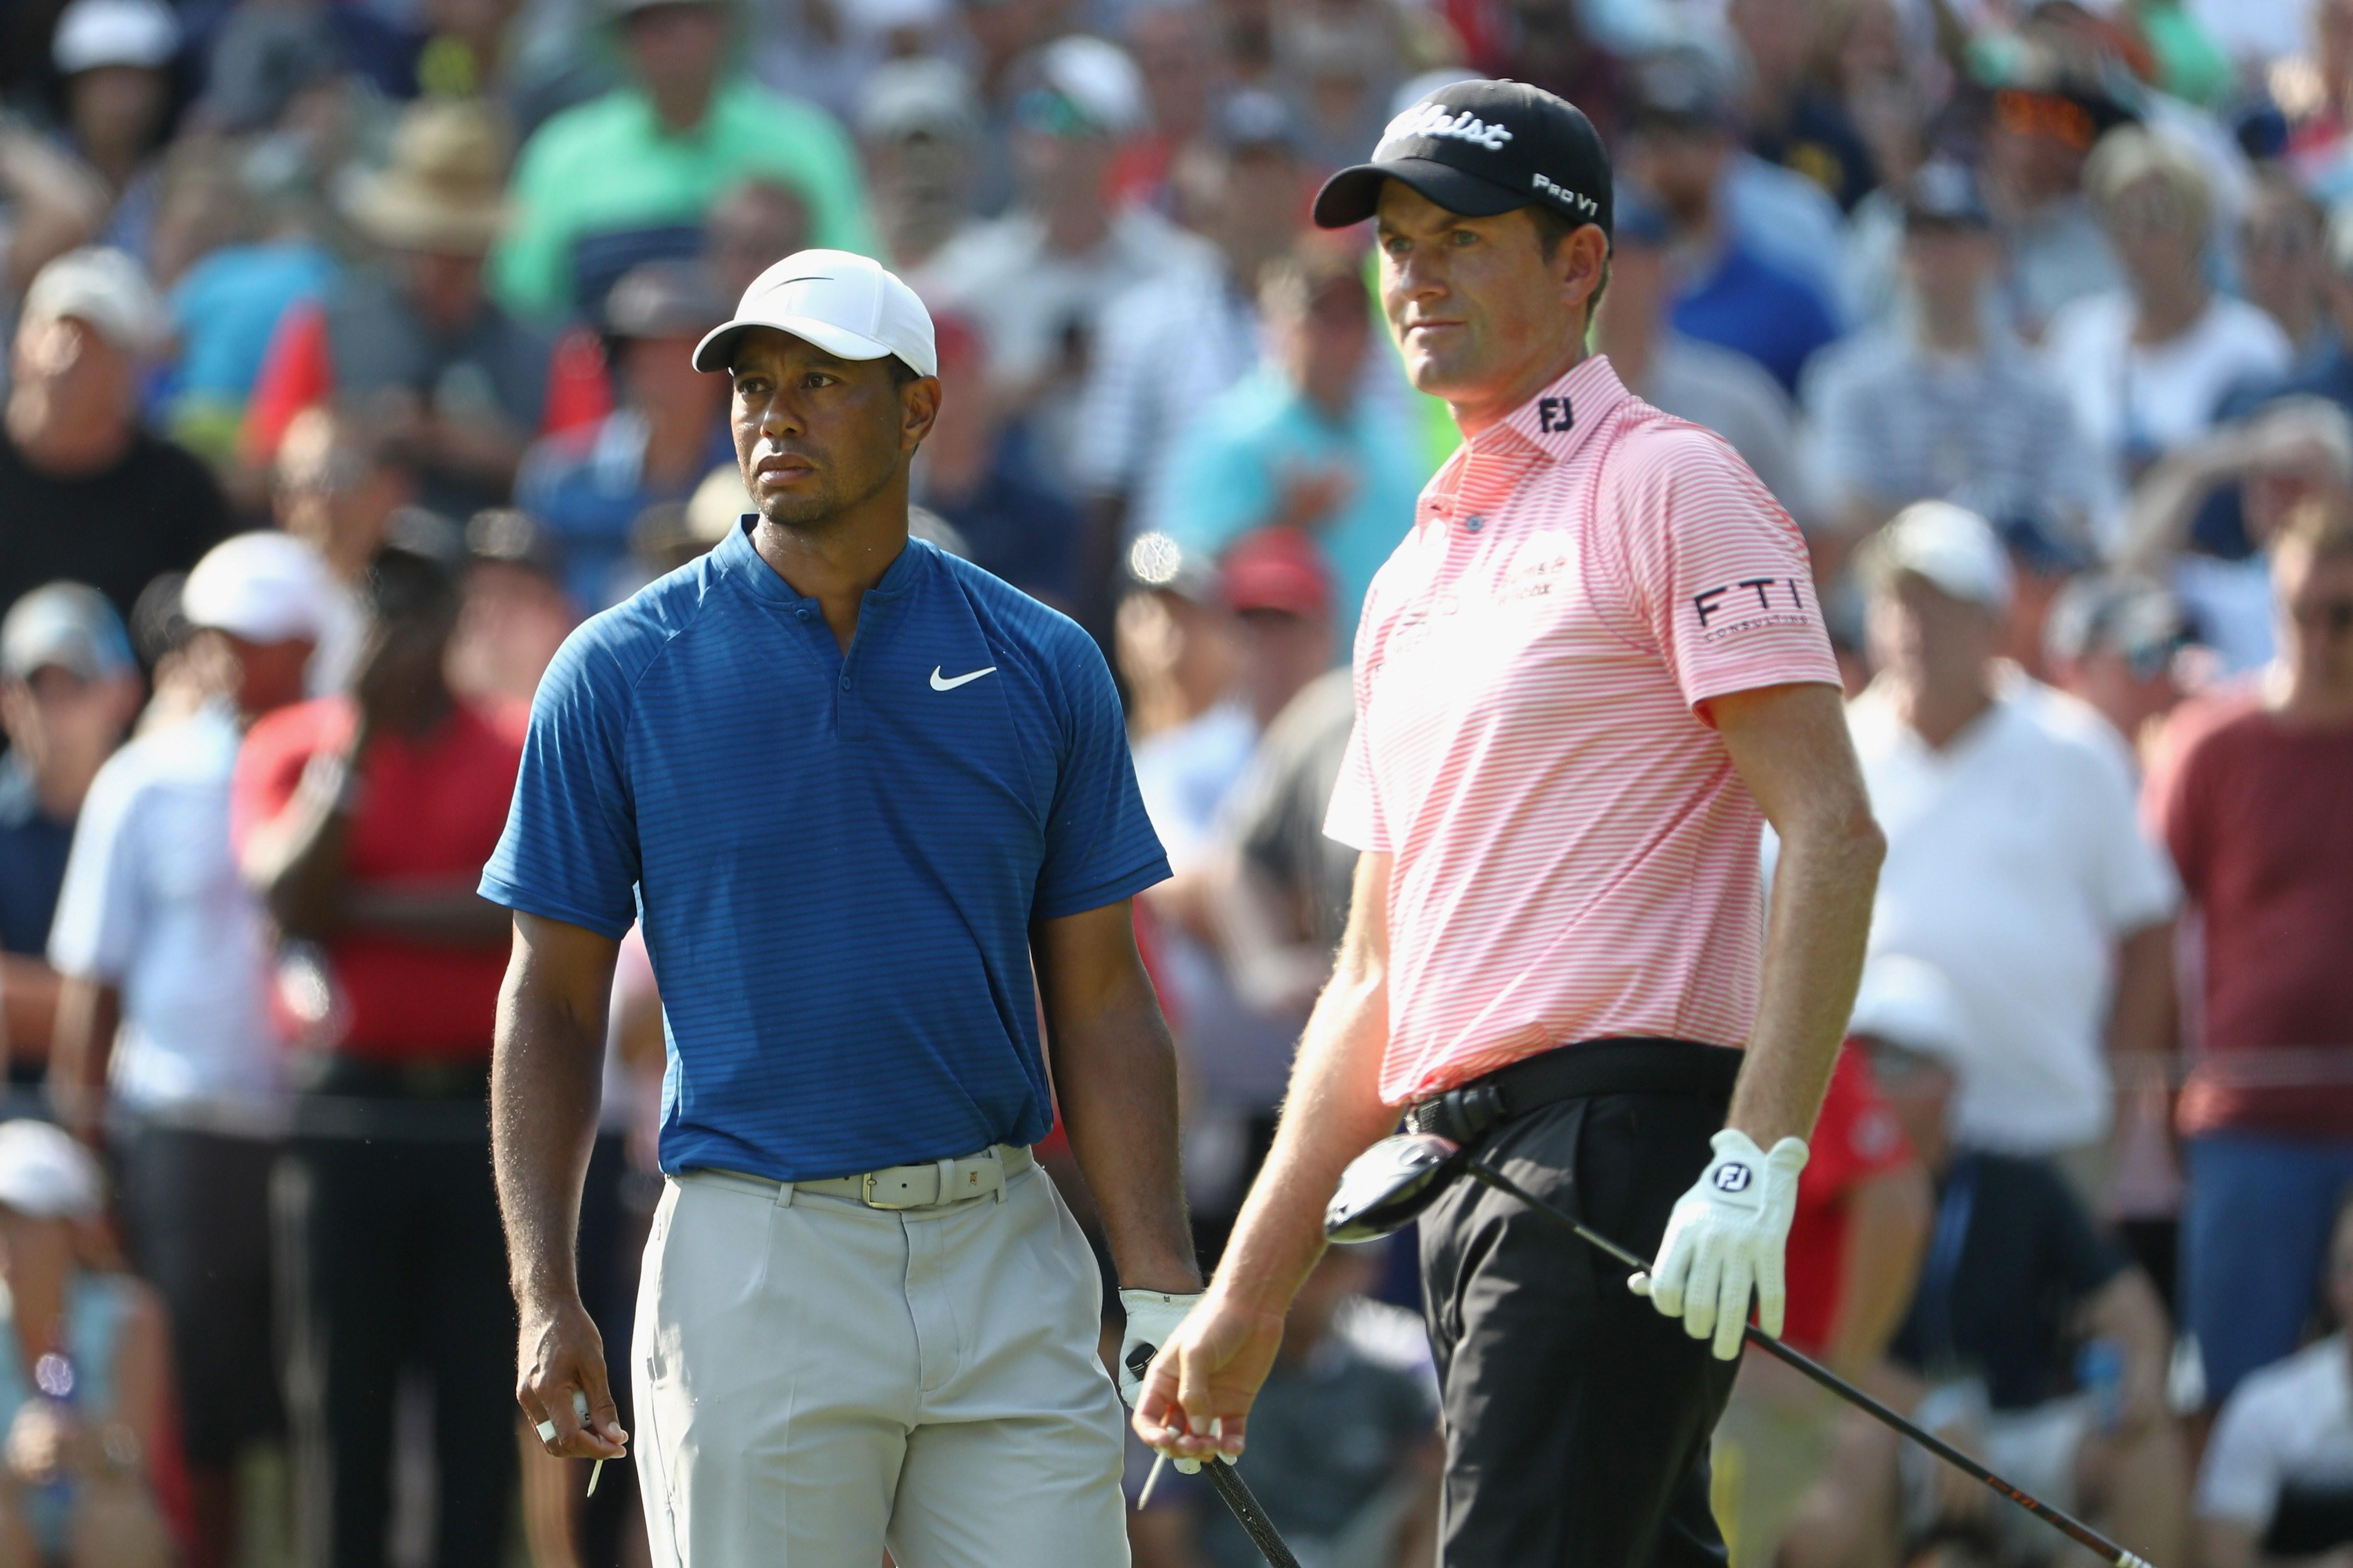 Tiger Woods has savage response to Webb Simpson, who thought